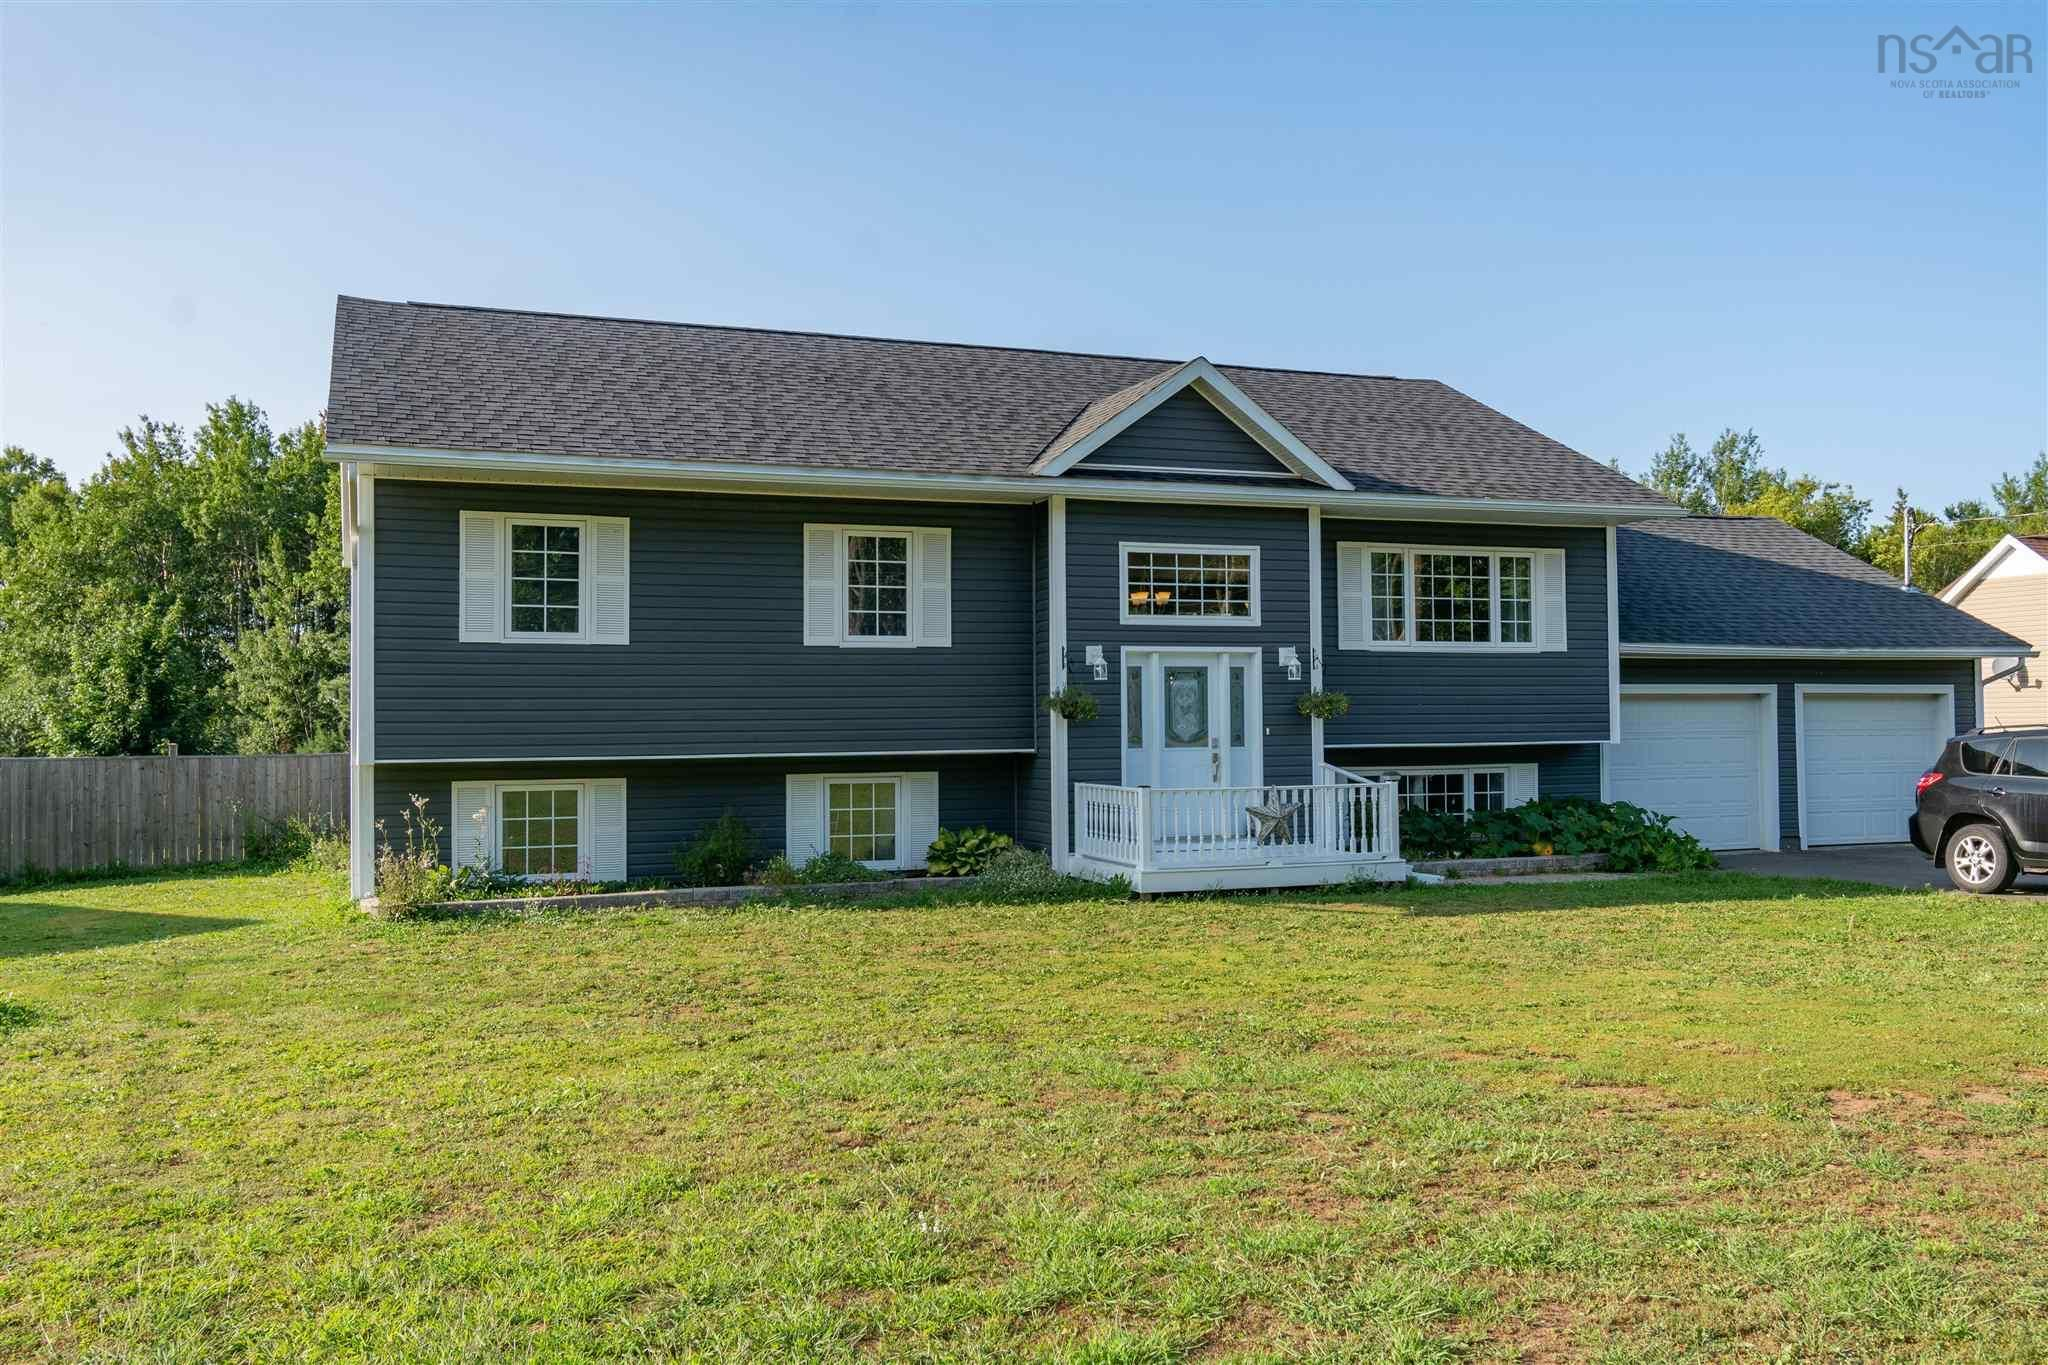 Main Photo: 10005 Highway 201 in South Farmington: 400-Annapolis County Residential for sale (Annapolis Valley)  : MLS®# 202121280